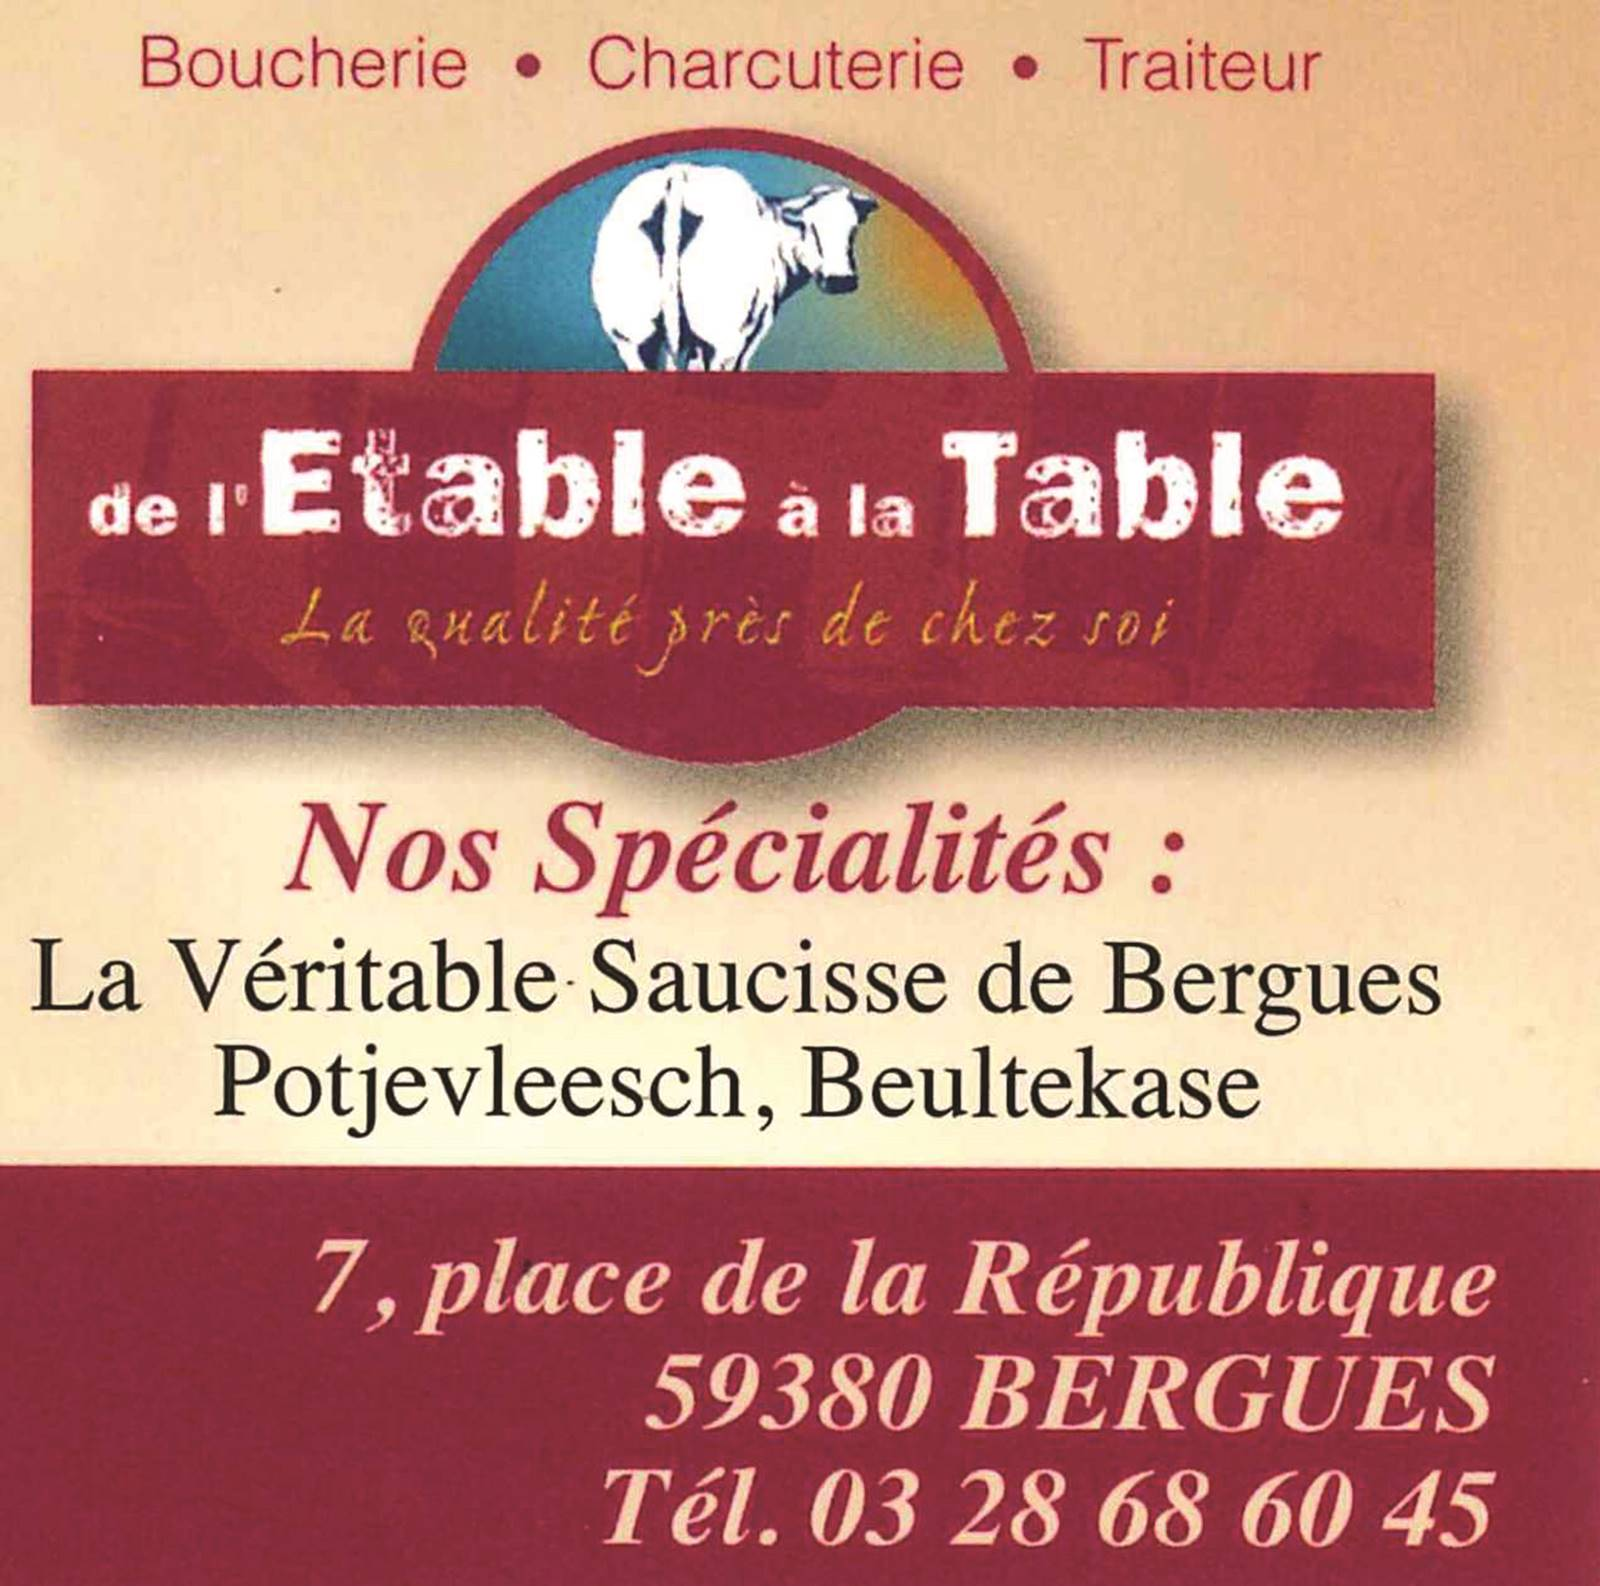 etable-table-commerce-bergues.jpg